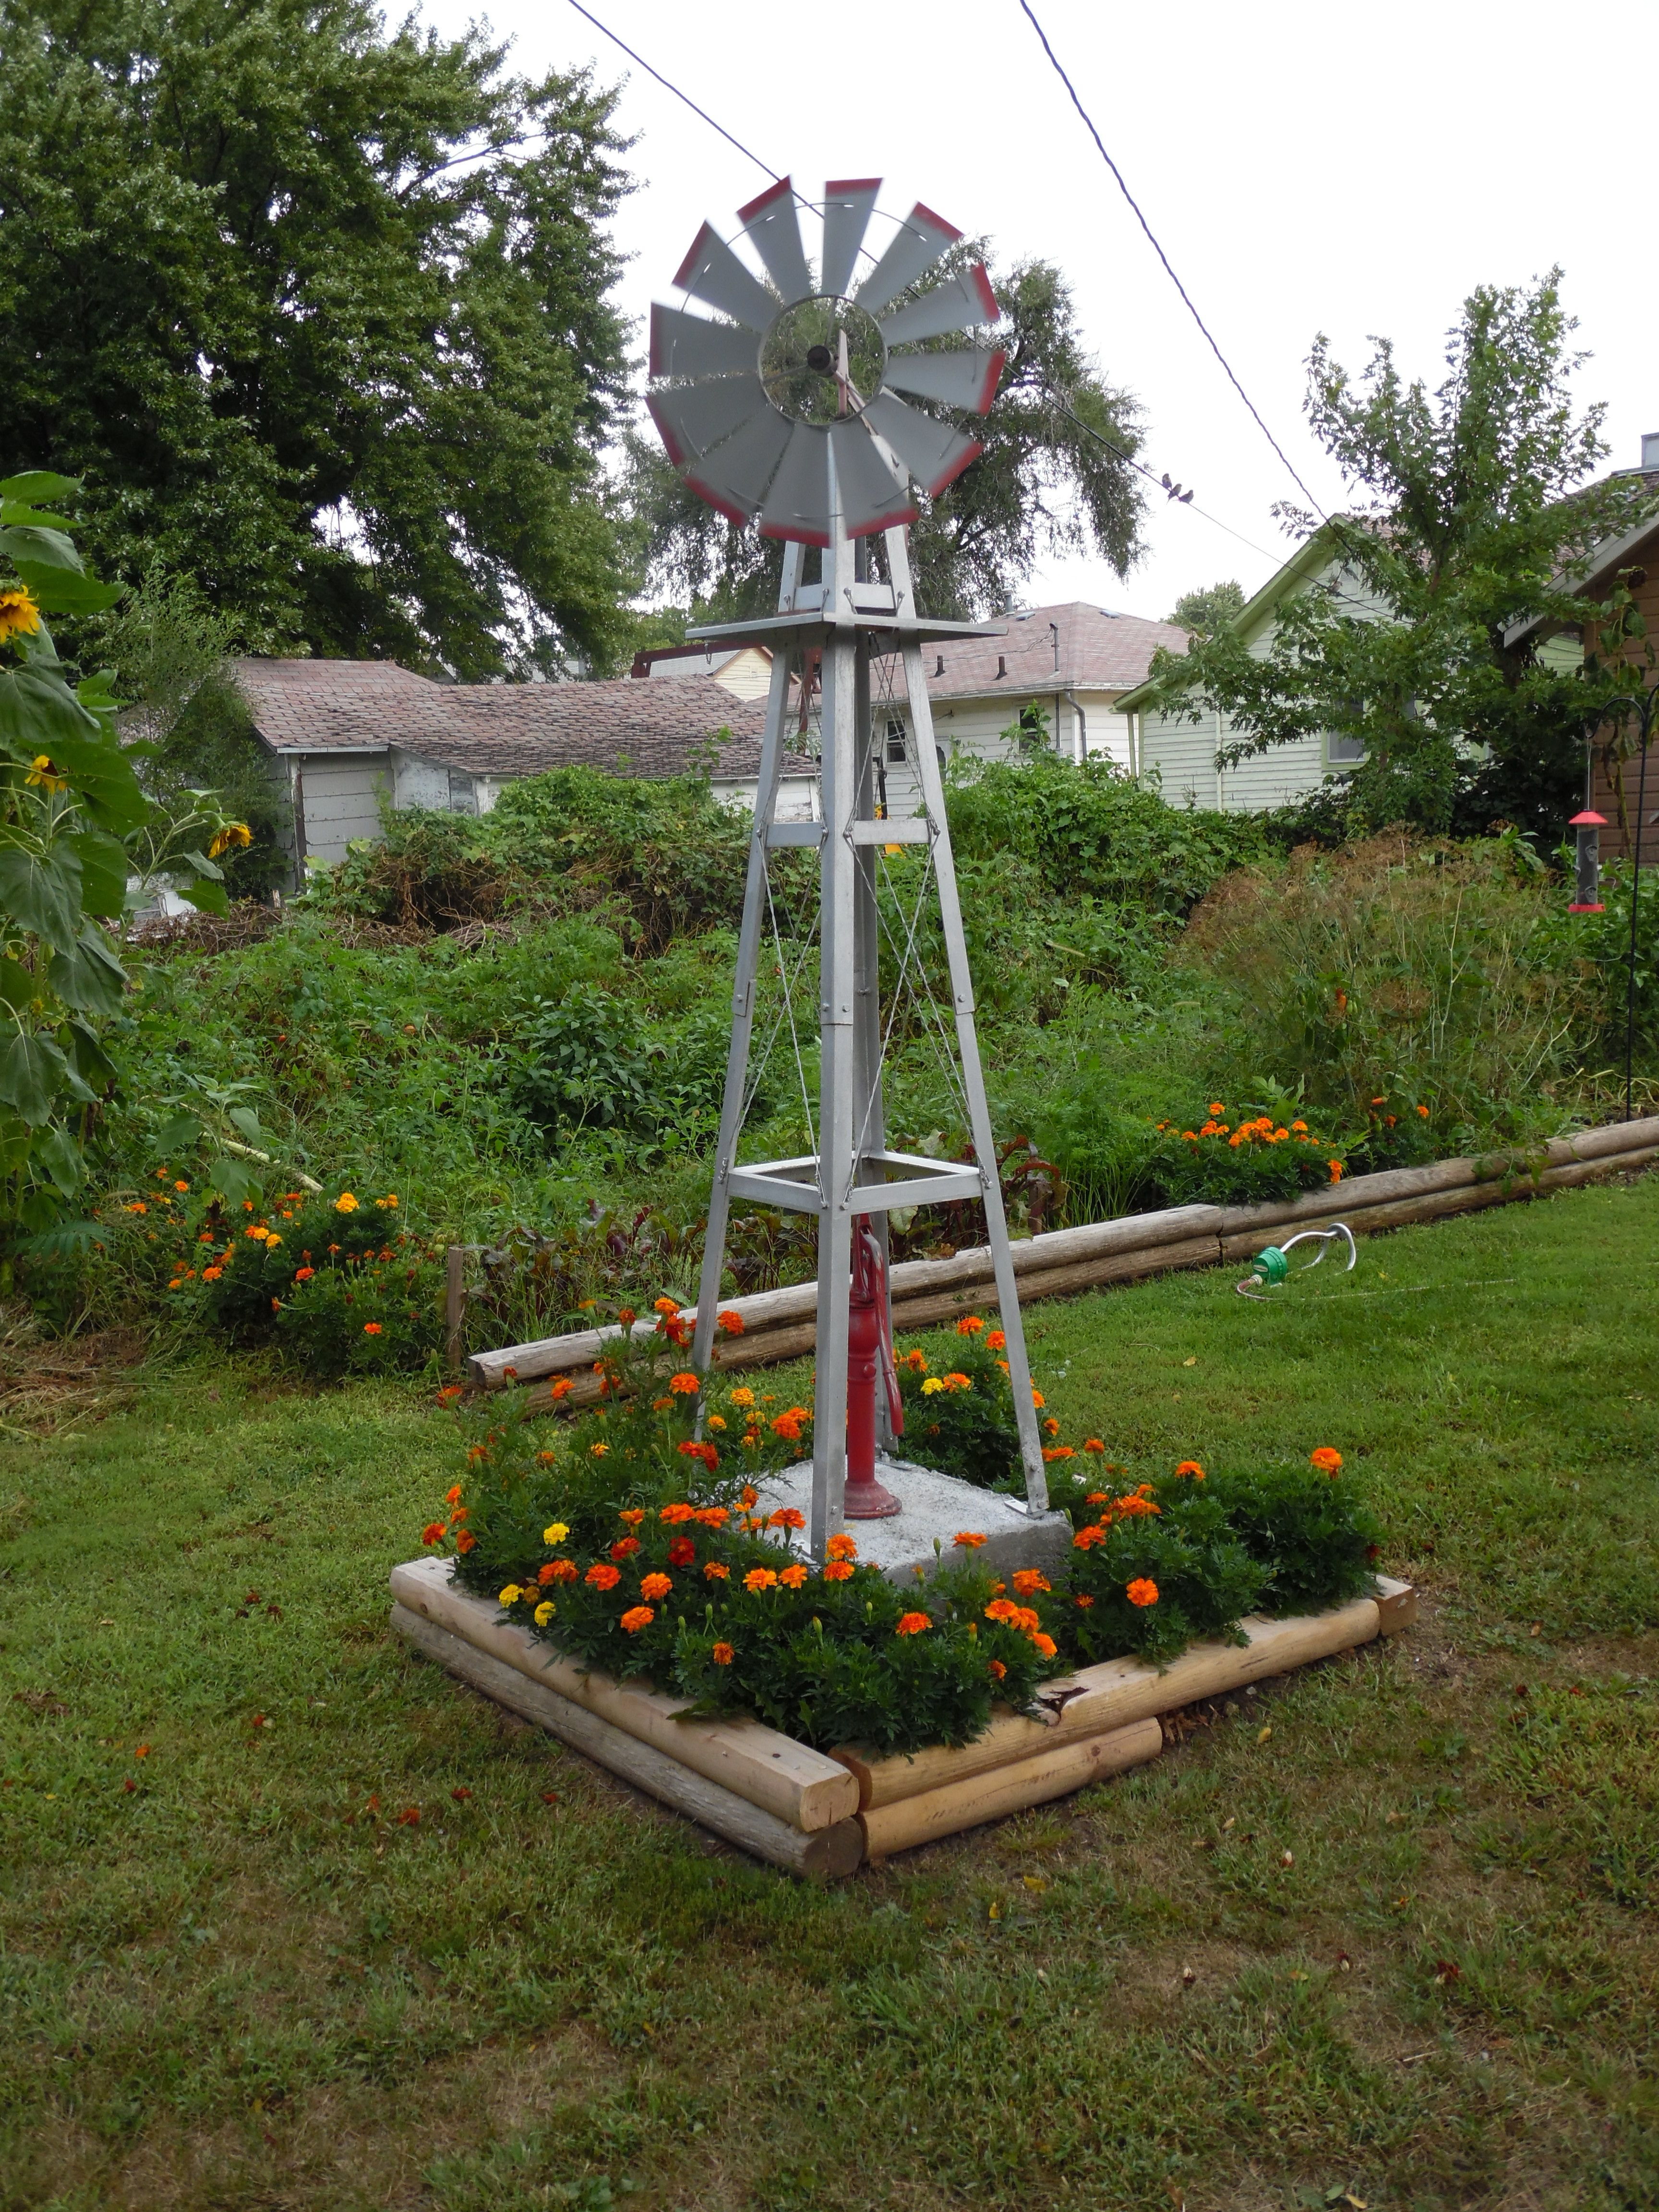 Our Windmill With Images Garden Pots Front Yard Yard Decor